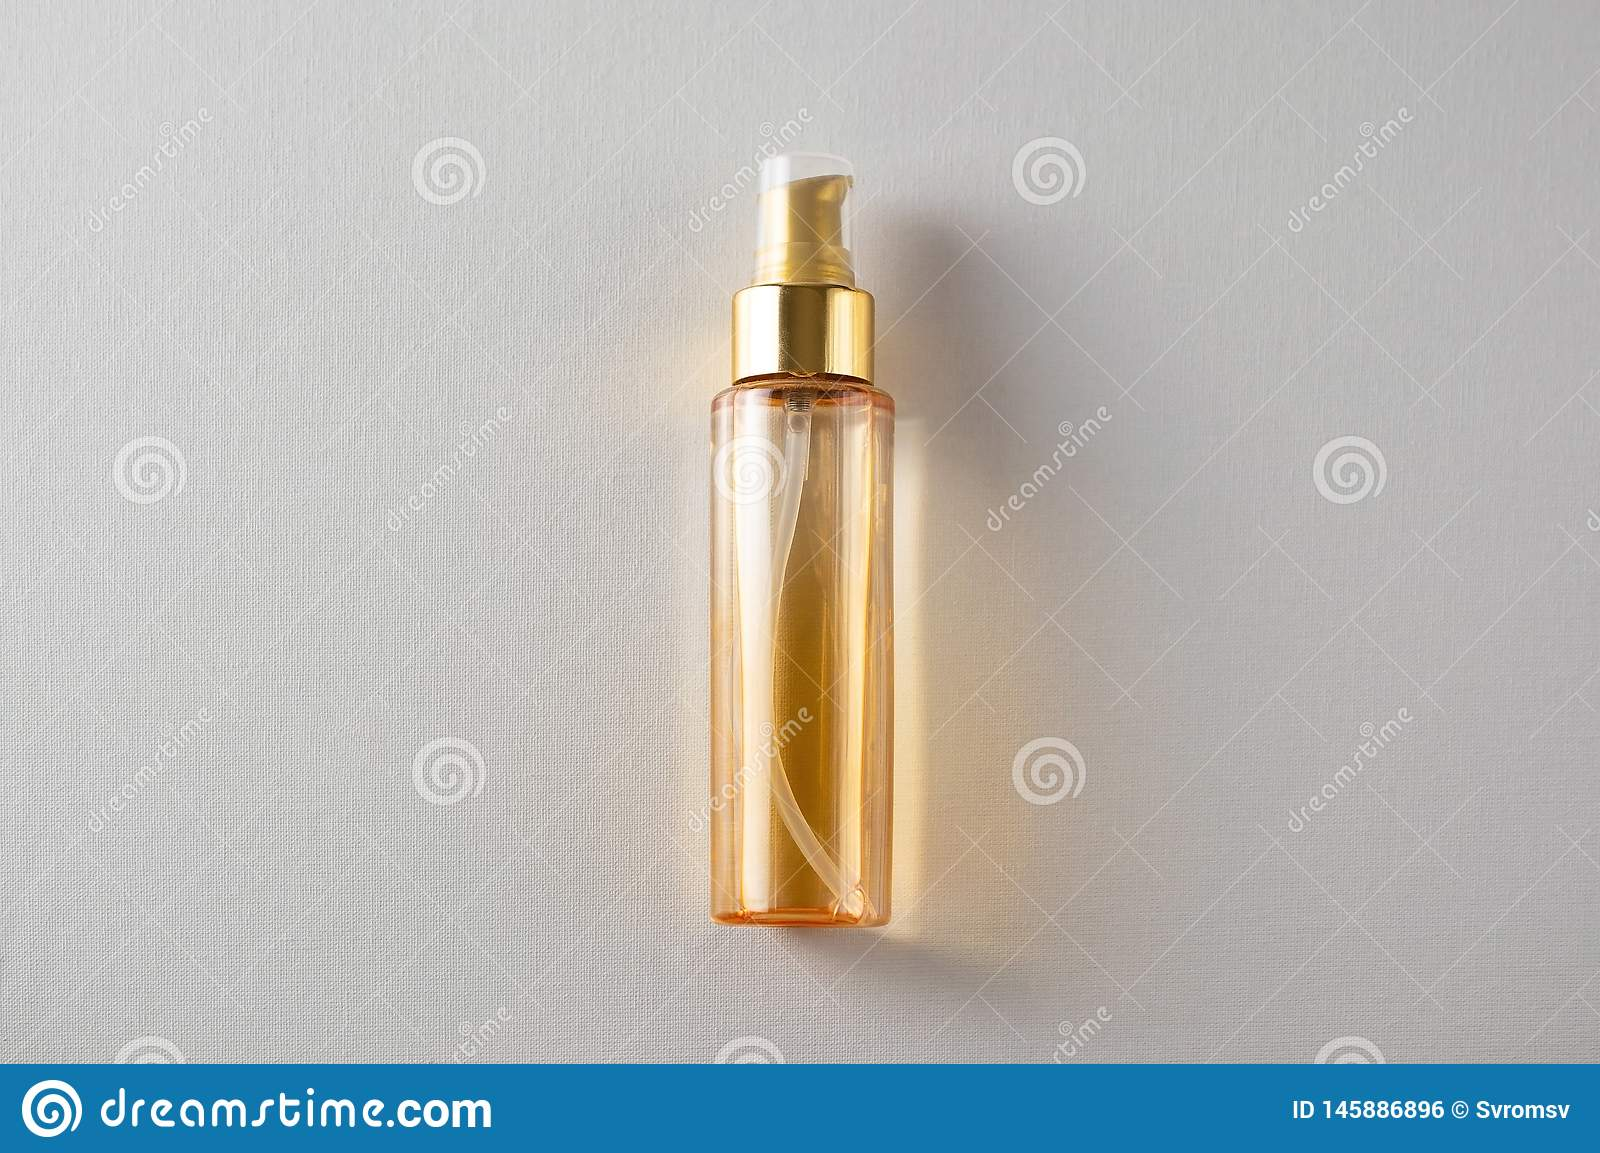 The bottle of yellow cosmetic oil overhead